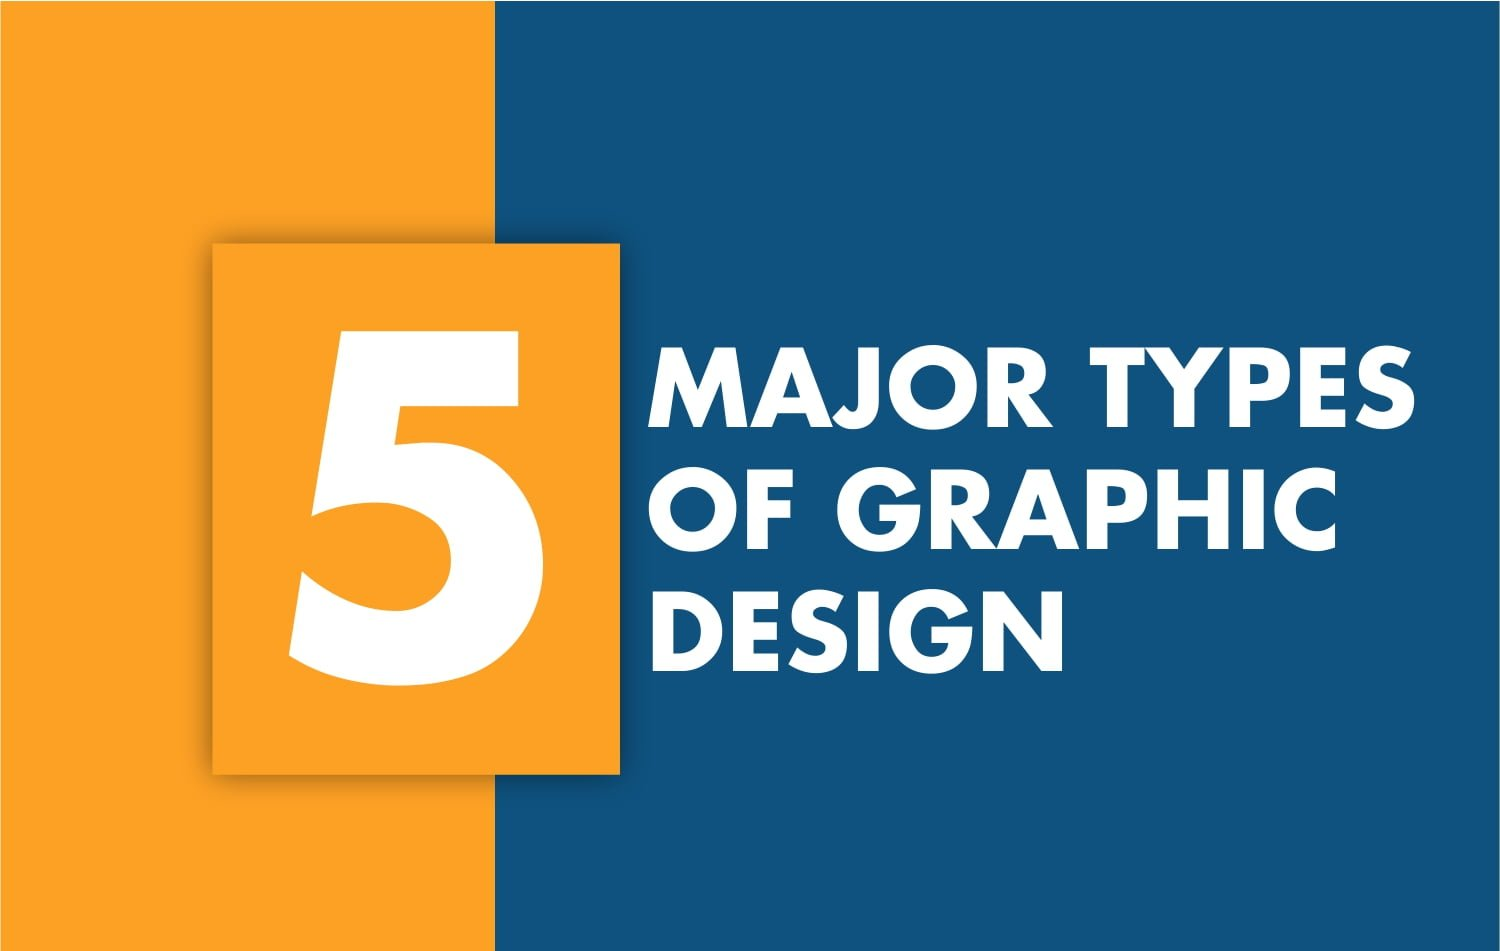 The 5 Major Types of Graphic Design